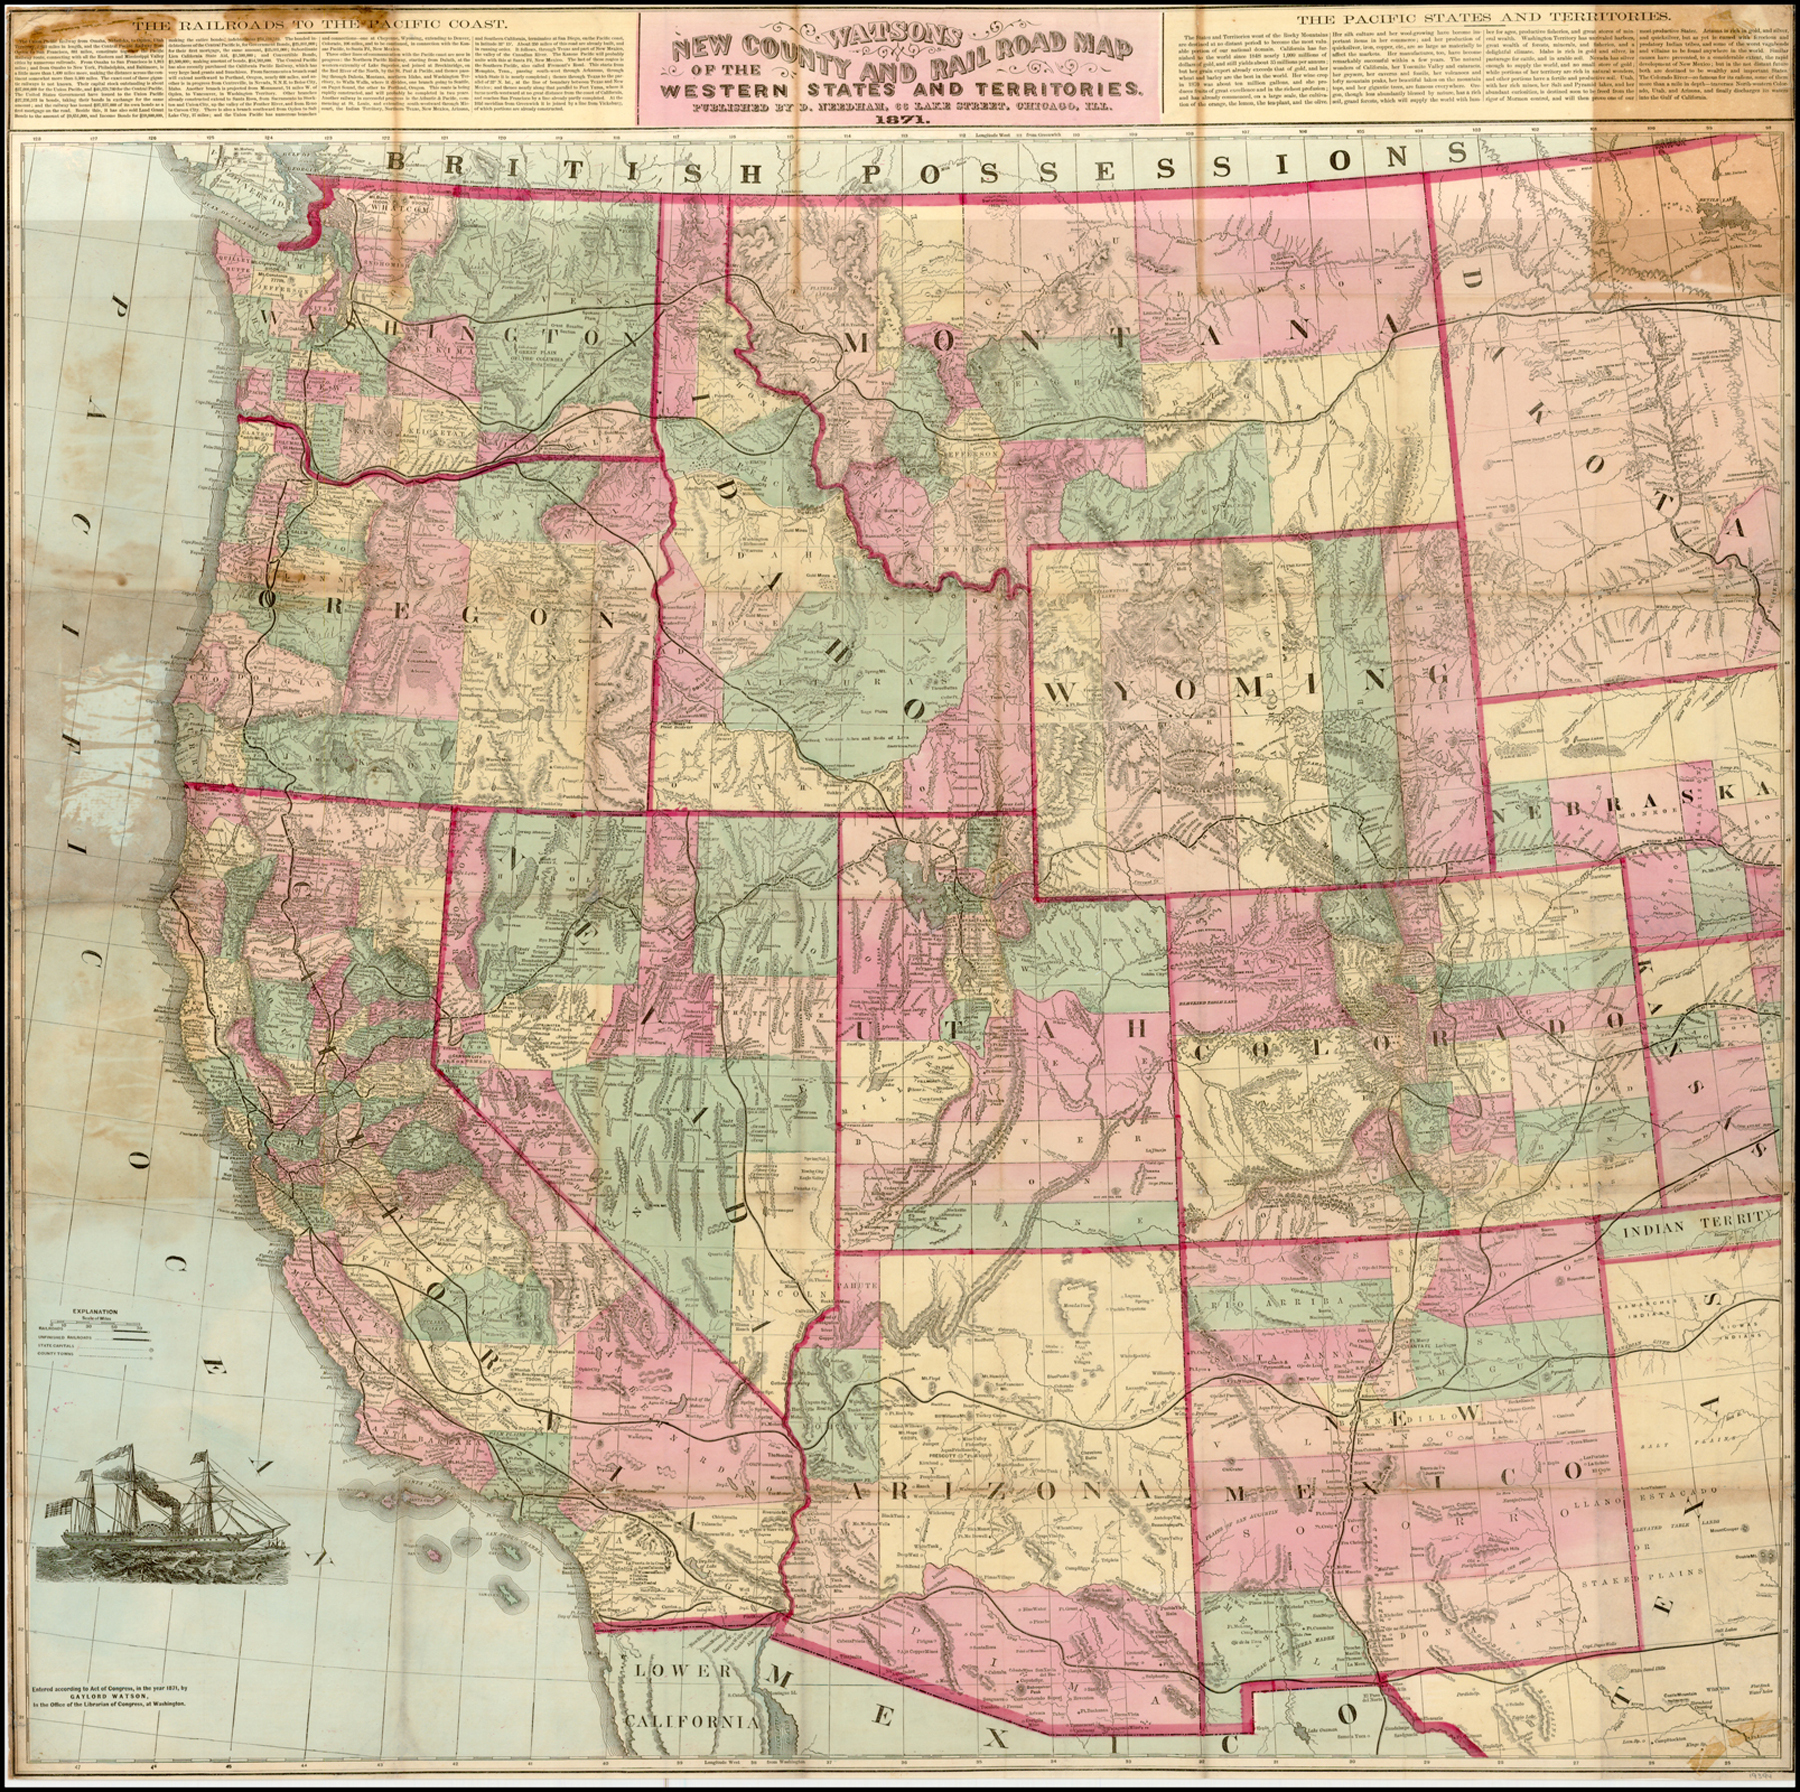 Watsons New County and Rail Road Map of the Western States ...